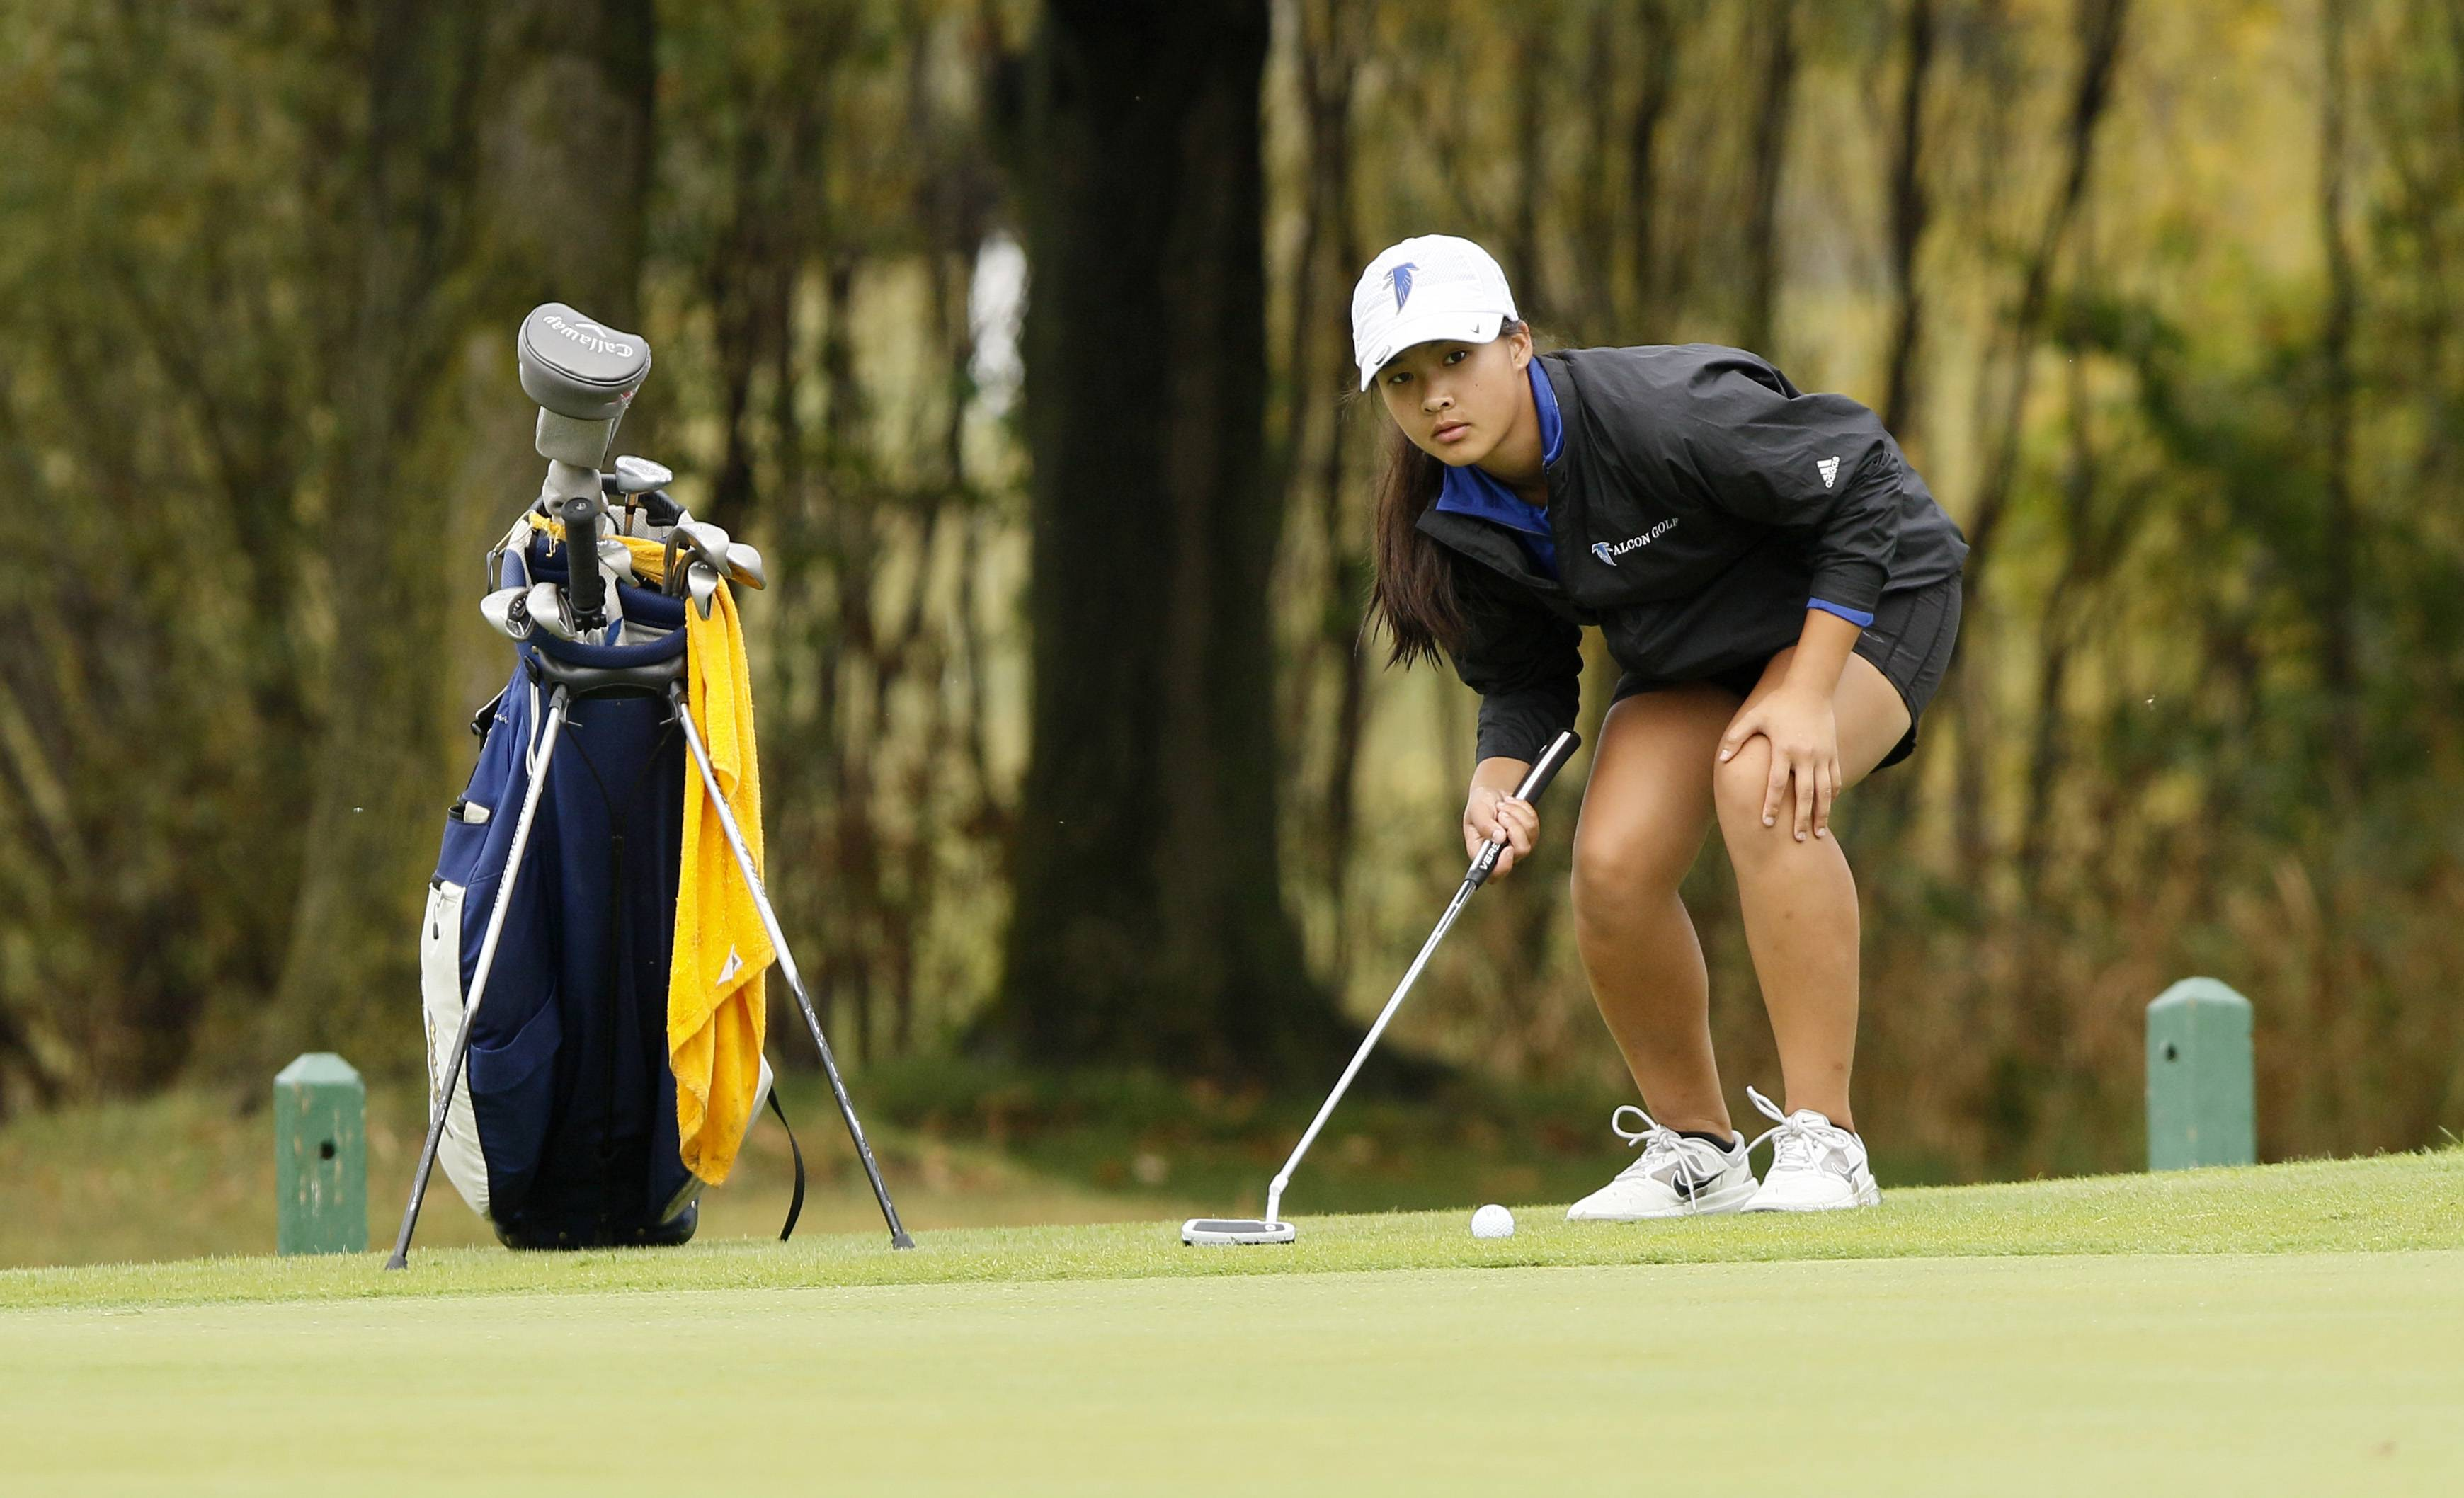 Wheaton North's Maddie Stevens eyes her putt on the 9th green during the Class 2A Nazareth girls golf regional at Links of the Carillon golf course in Plainfield.